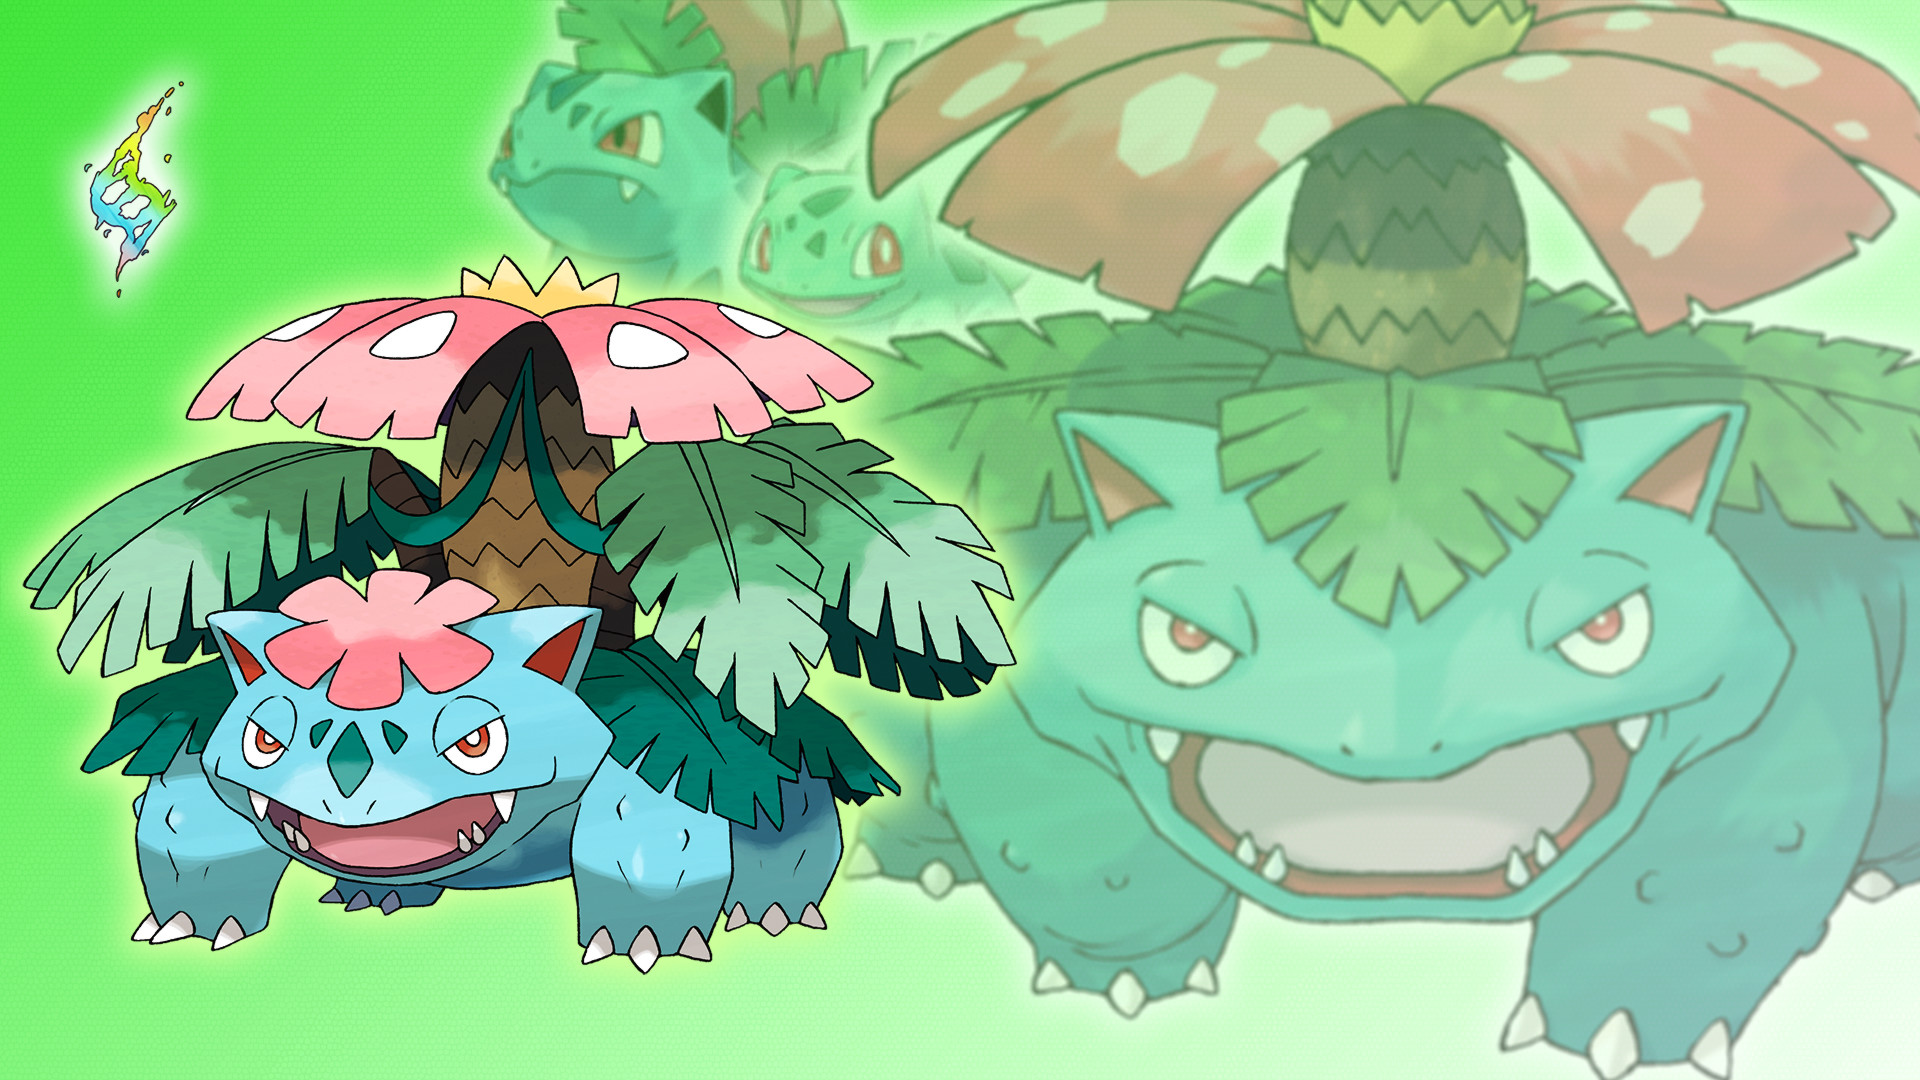 Res: 1920x1080, ... Bulbasaur, Ivysaur, Venusaur and Mega Wallpaper by Glench